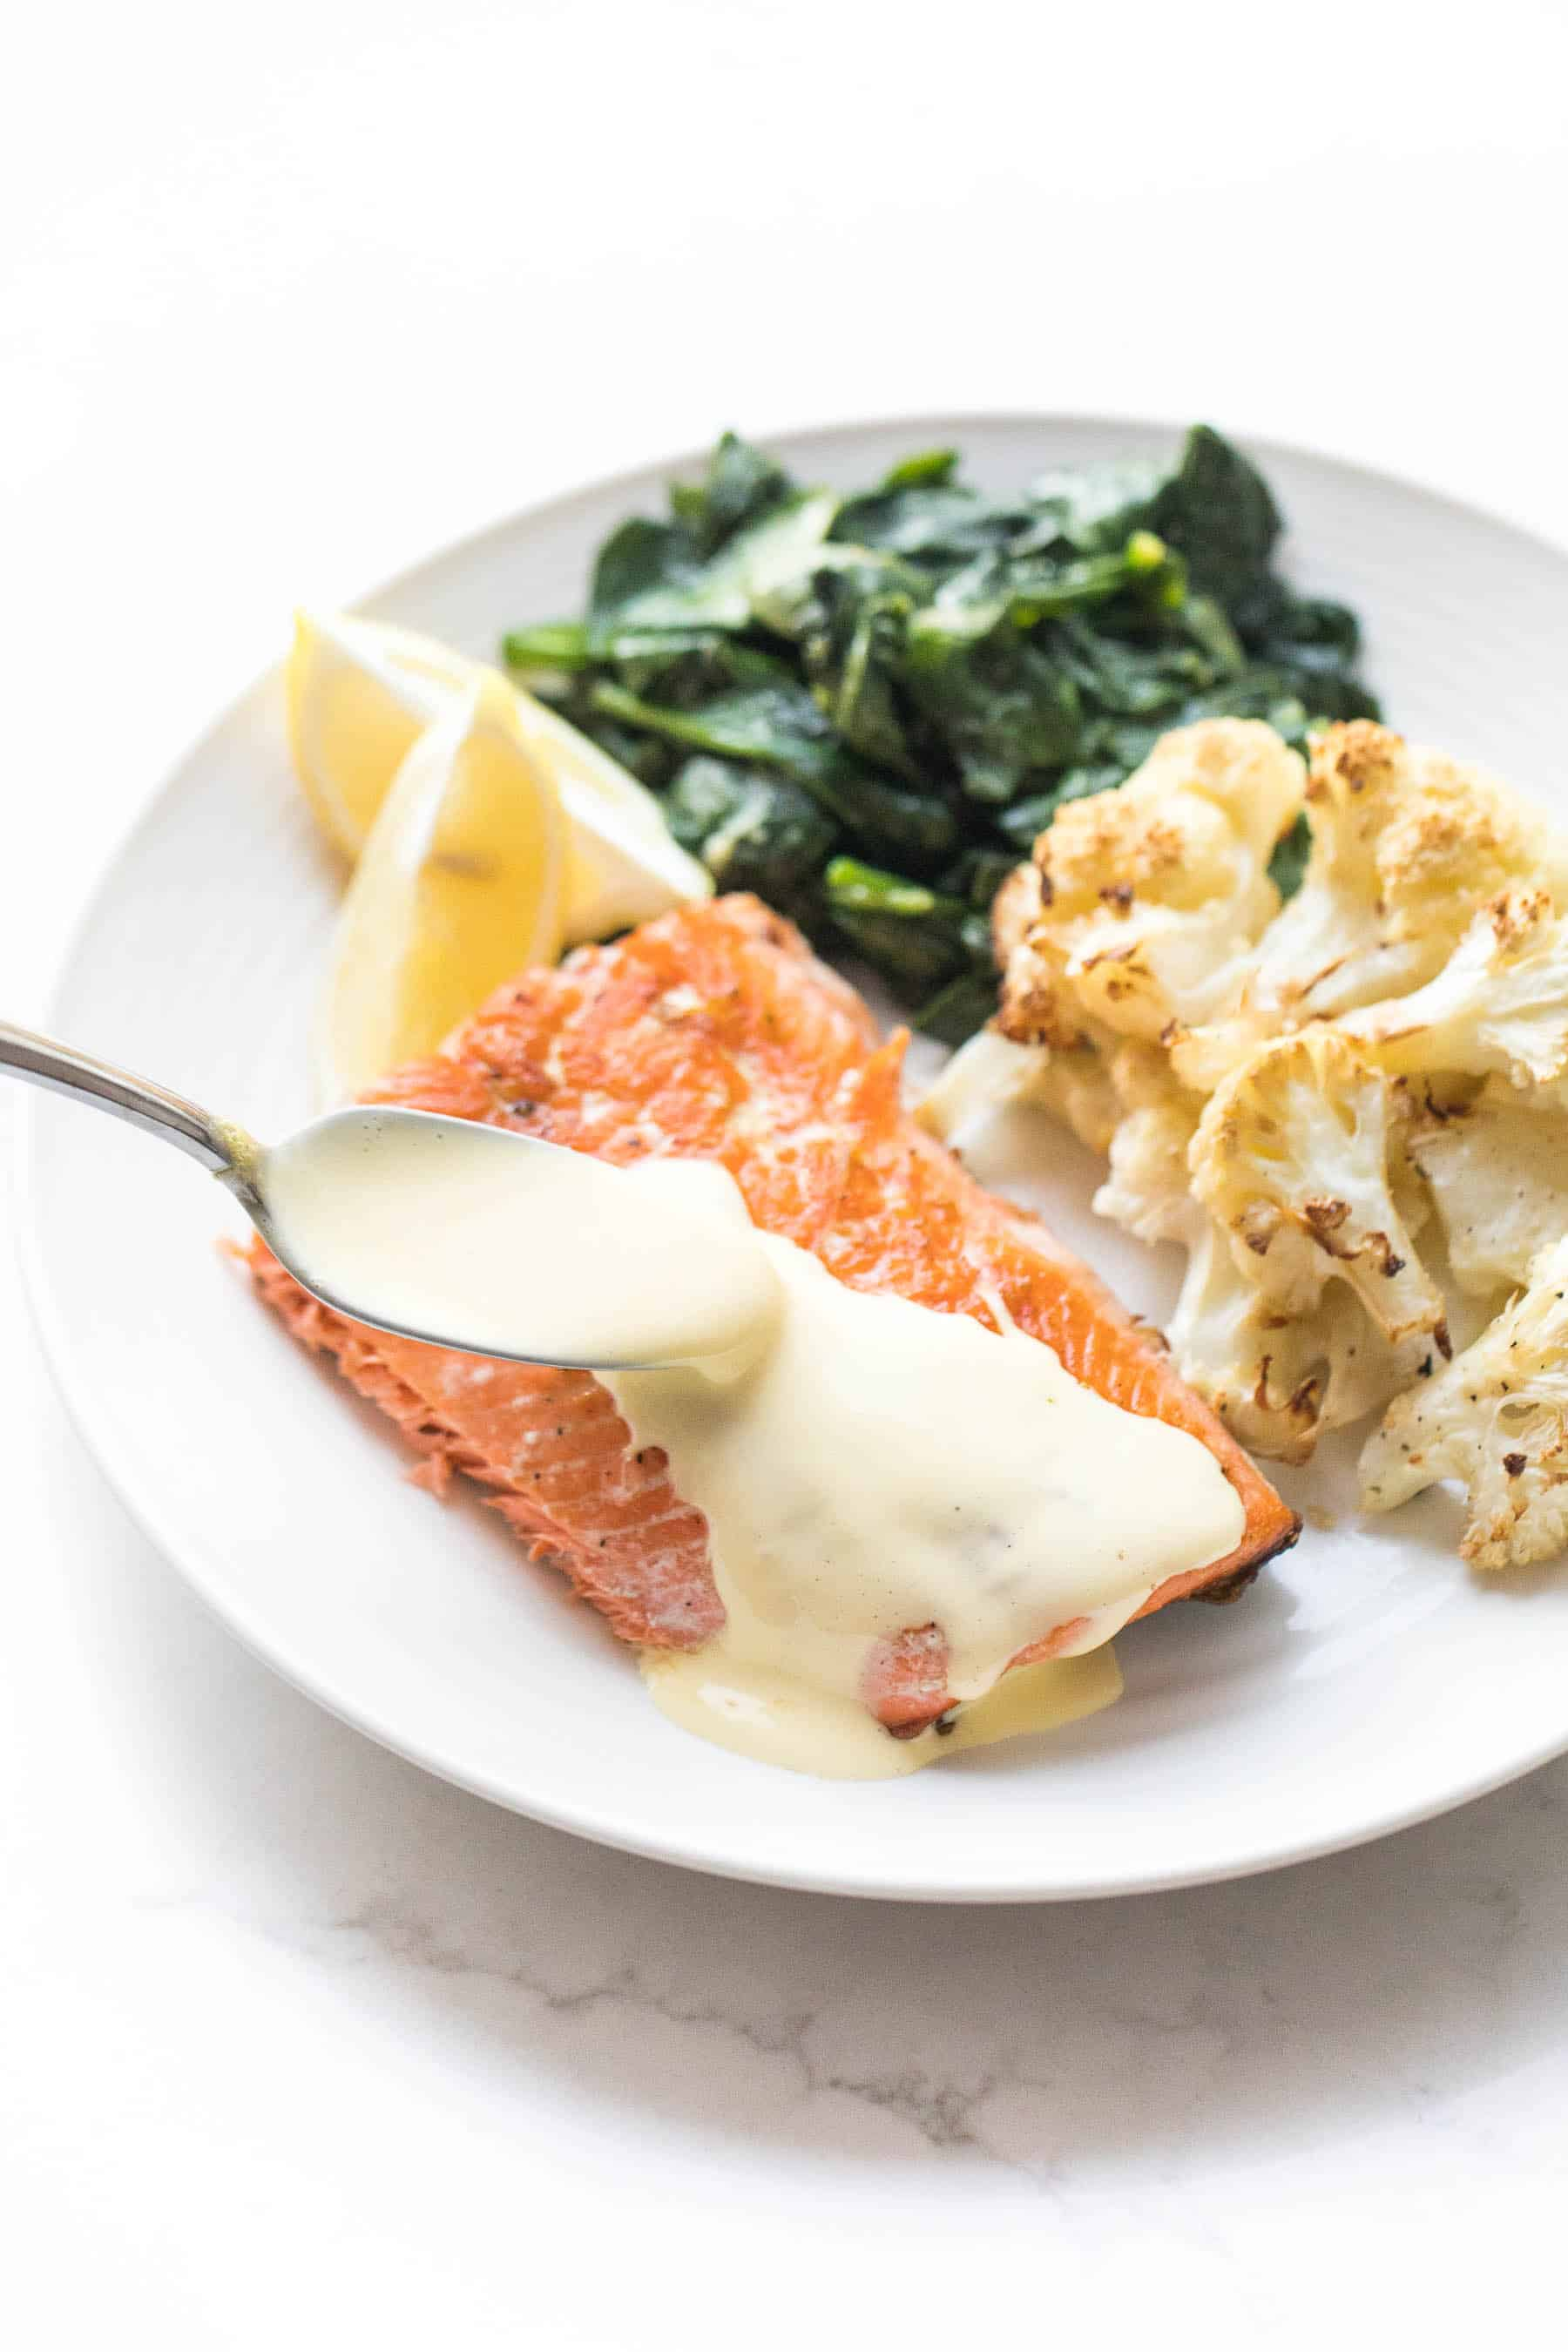 White plate with salmon and a spoon pouring hollandaise sauce, roasted cauliflower, sauteed spinach on a white background